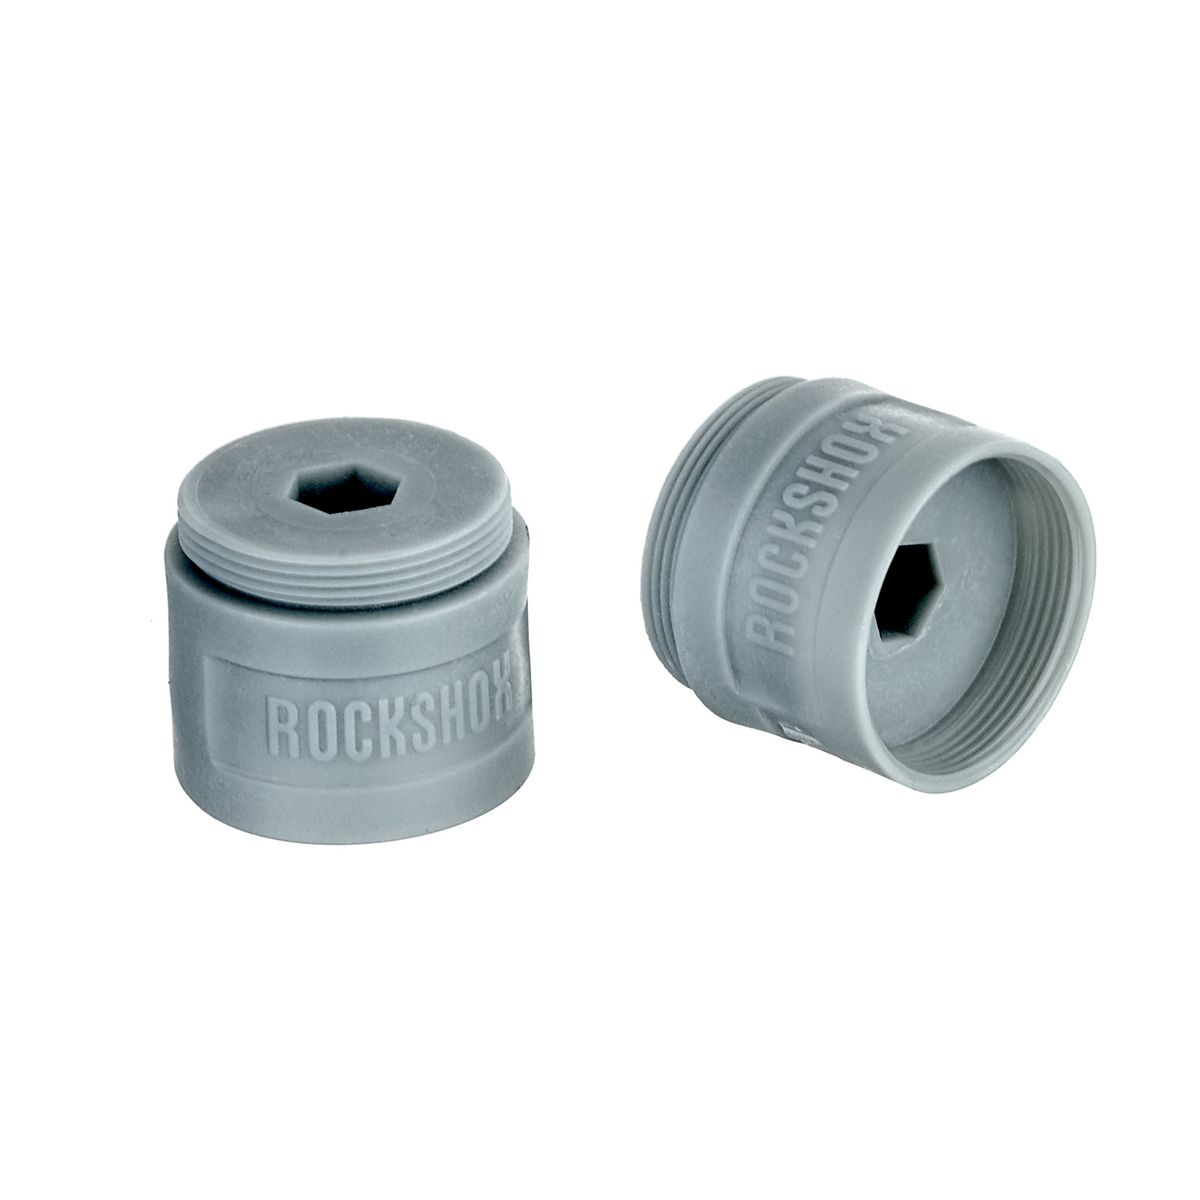 Bottomless Token Volumen-Spacer 2er Set